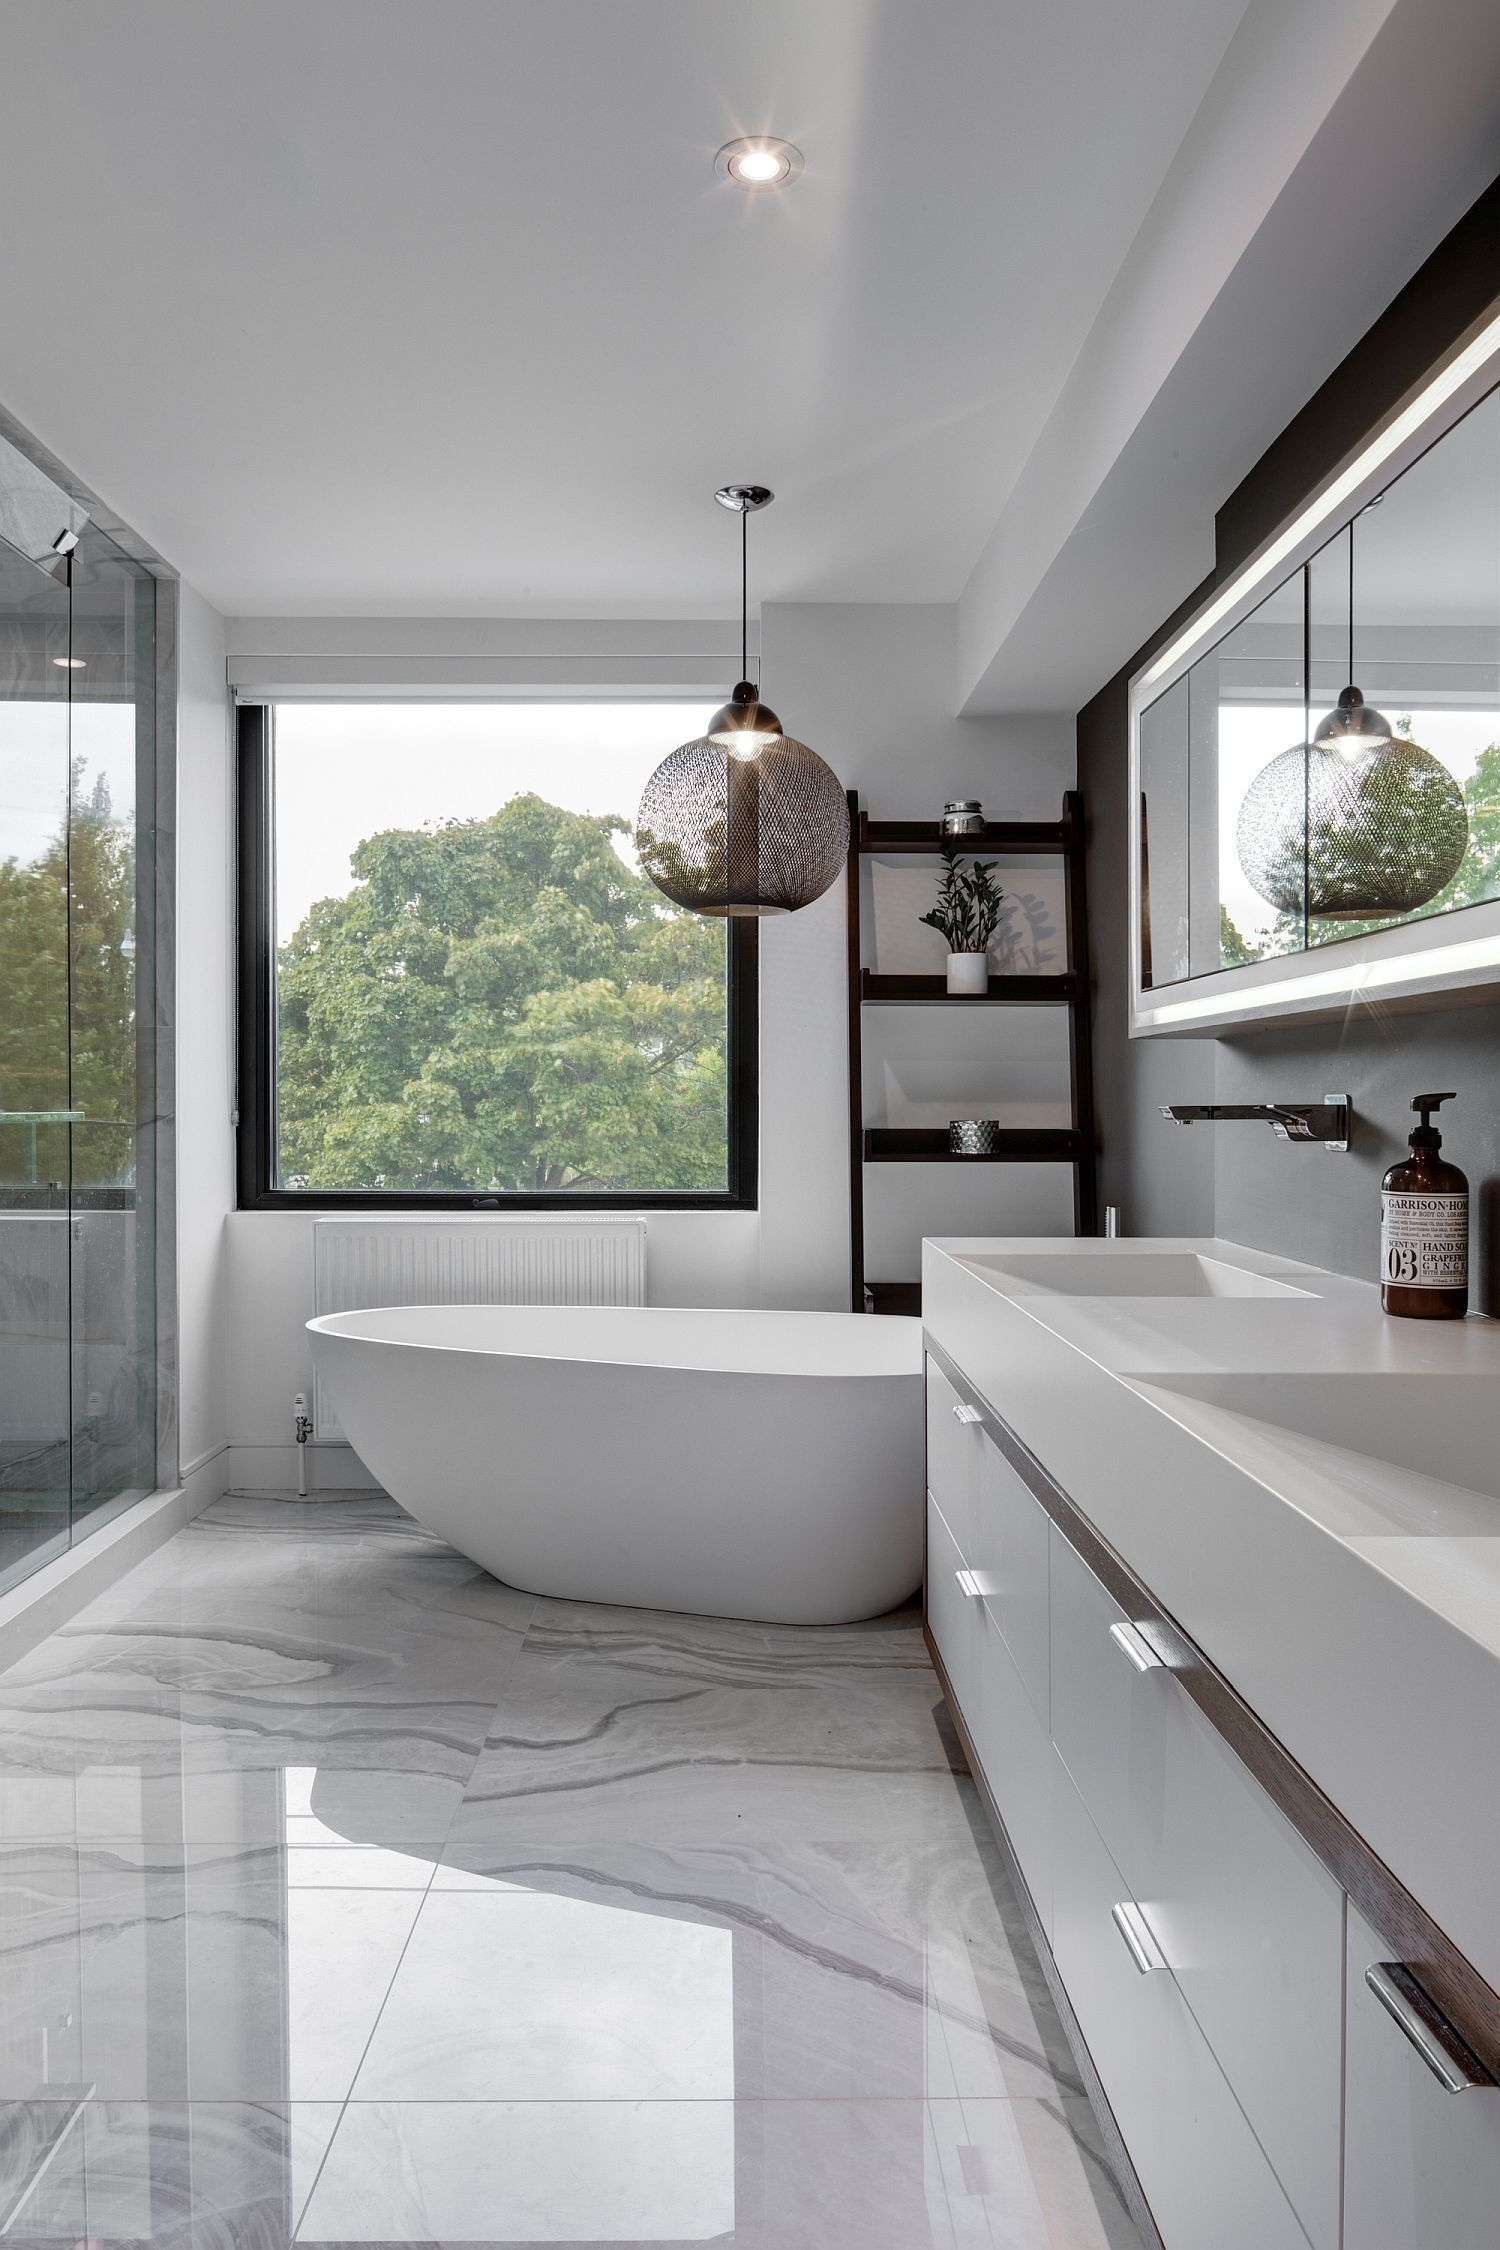 Fascinating Bathroom Ideas For Inspirations 11